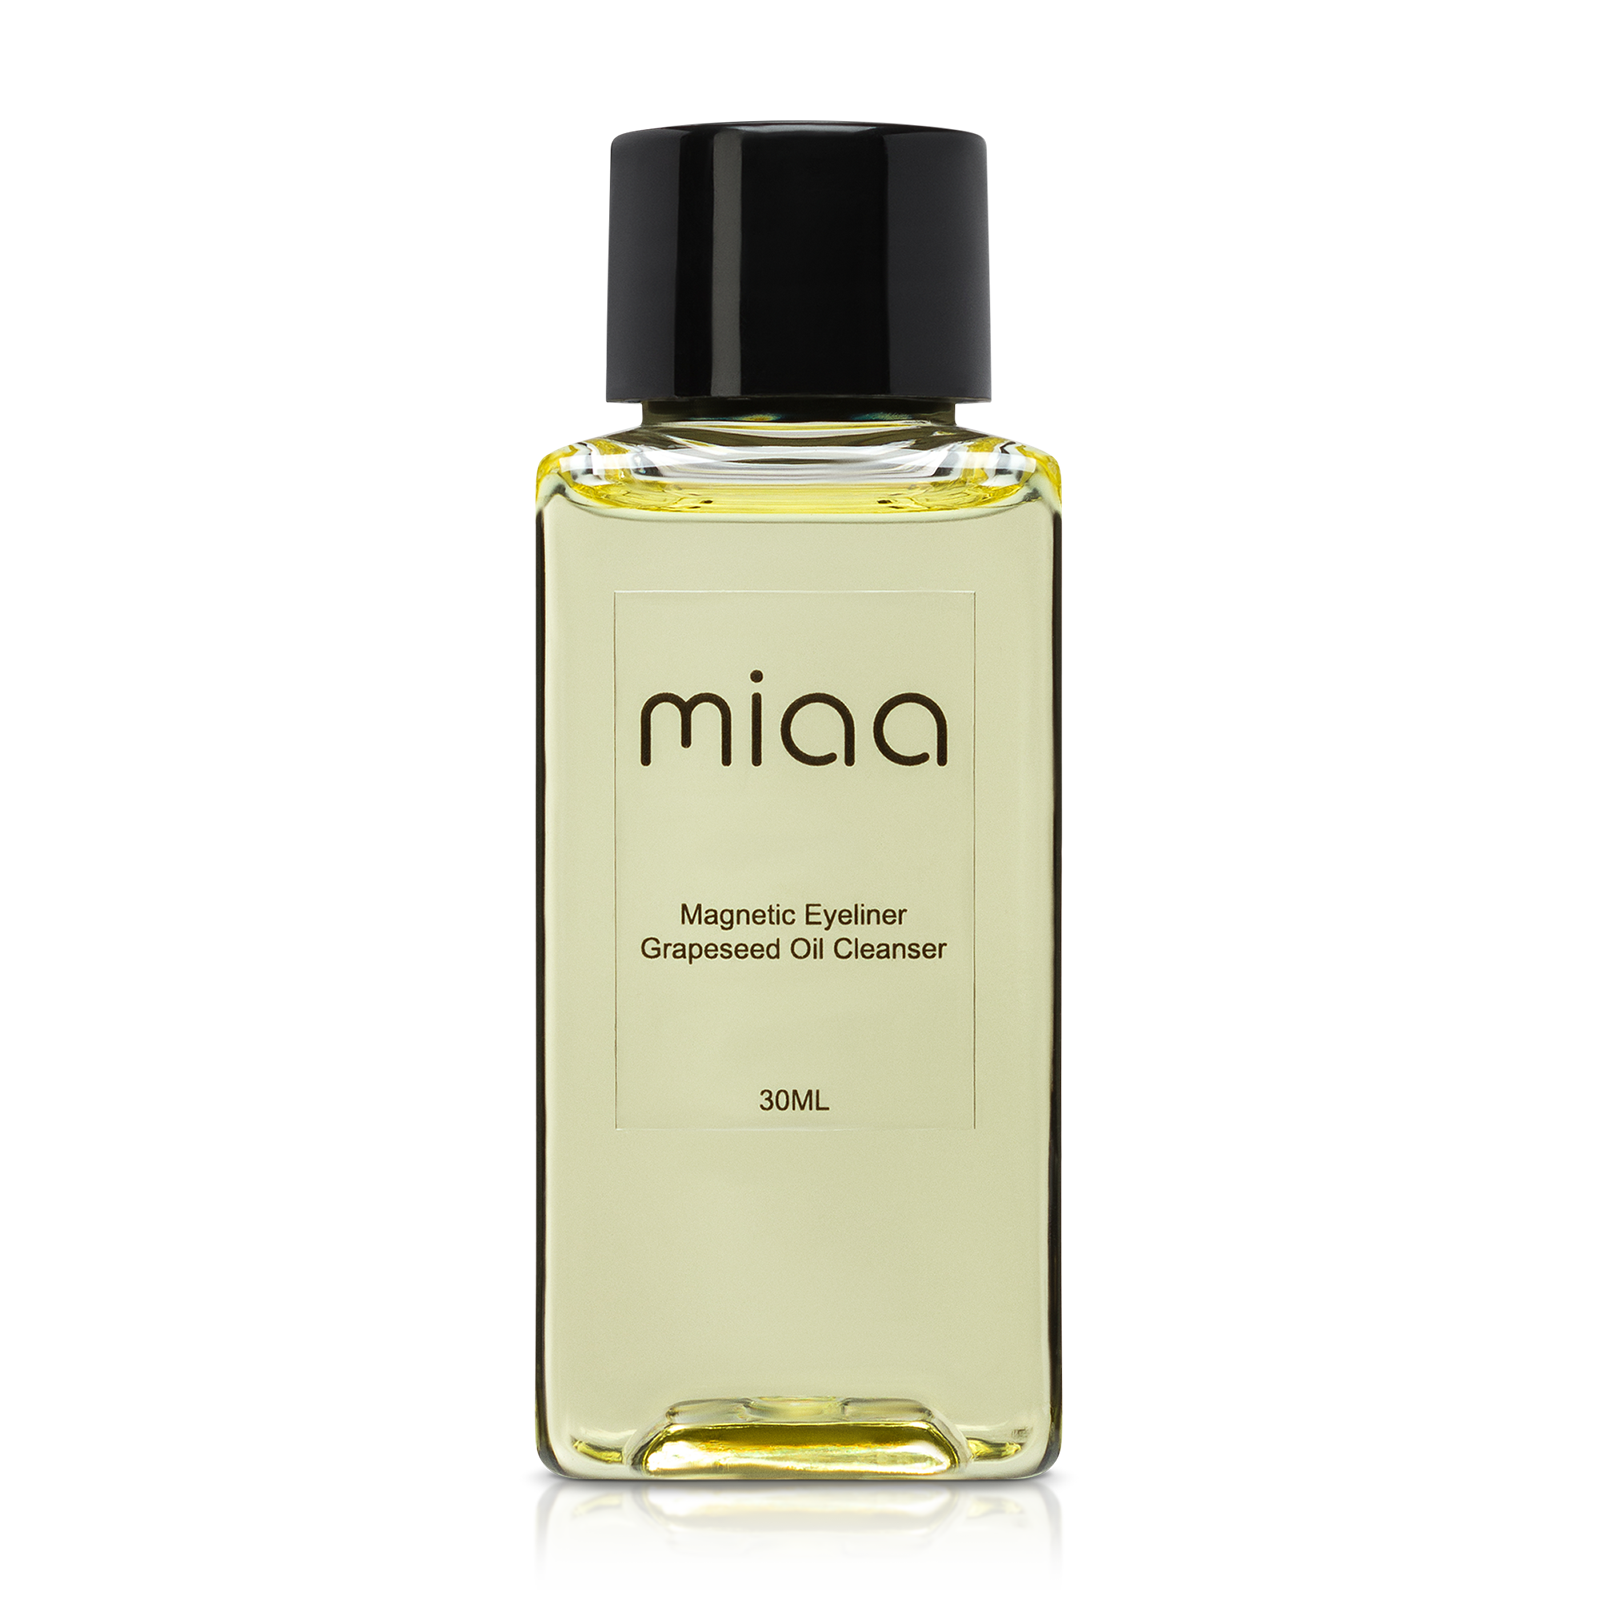 Oil cleanser product picture